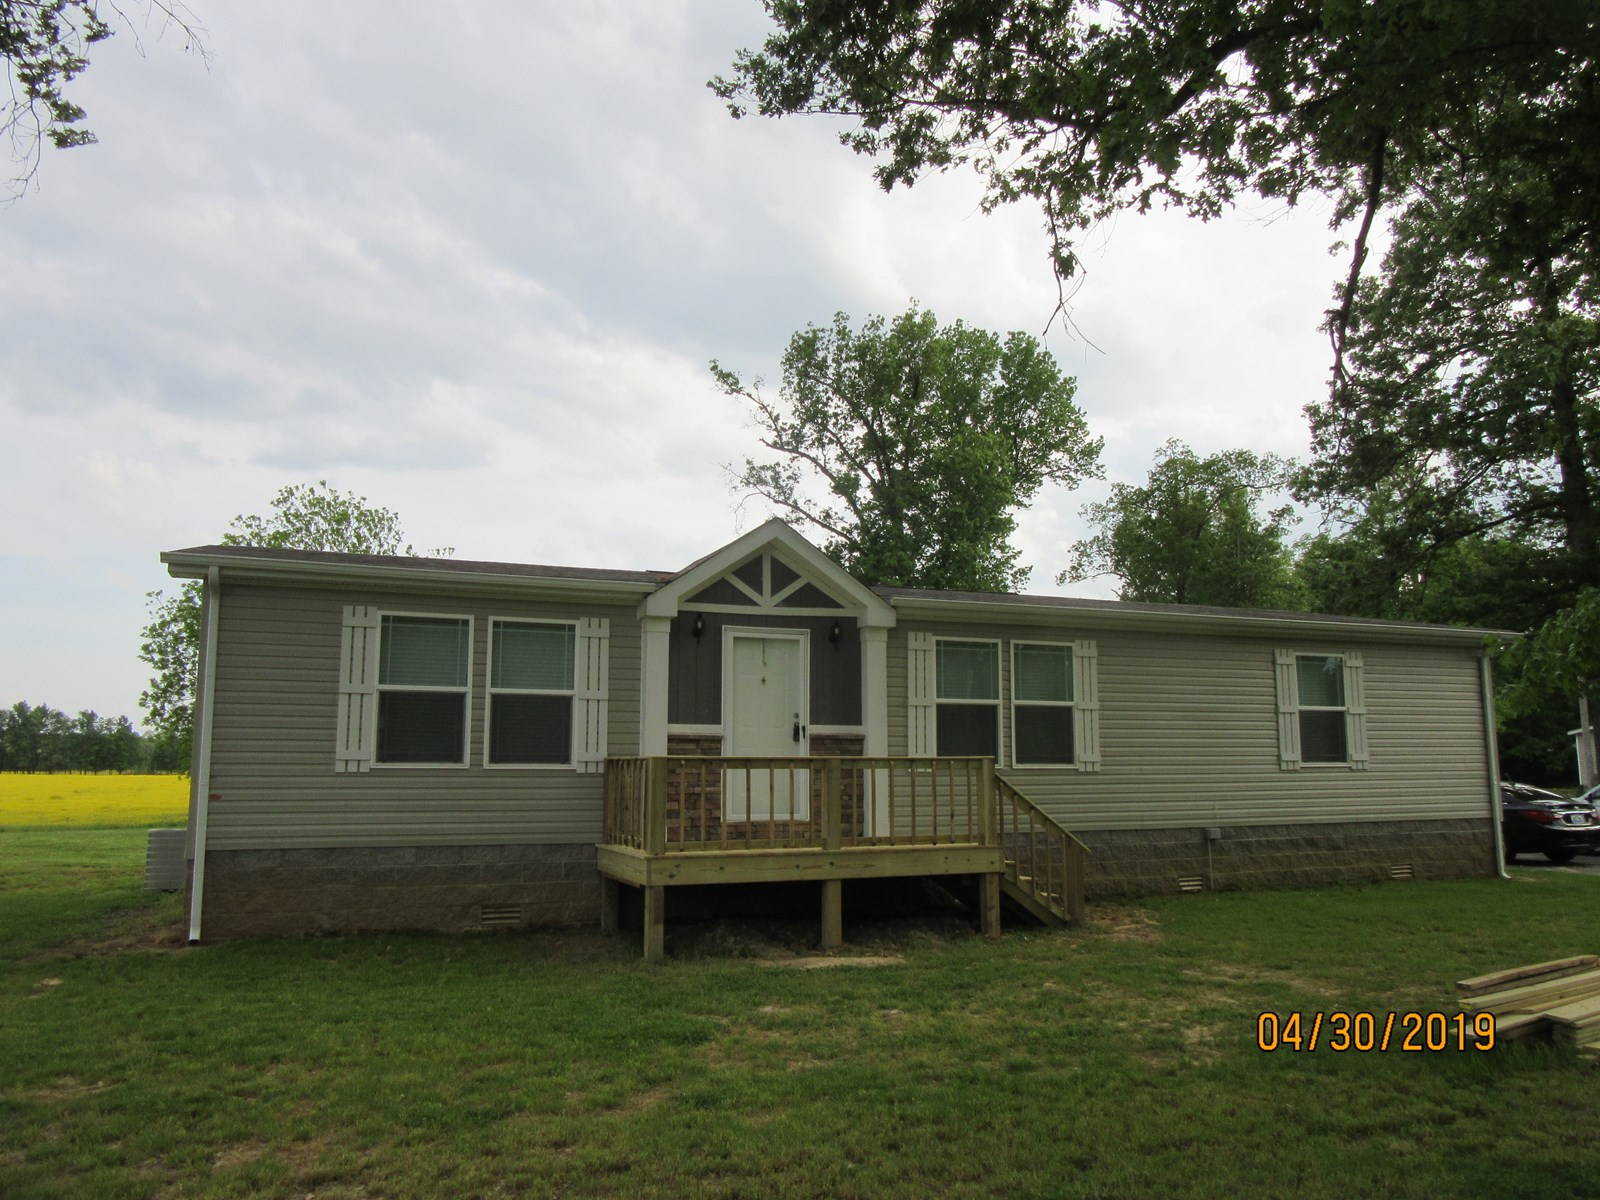 Manufactured Home - Feel of country with convenience of town